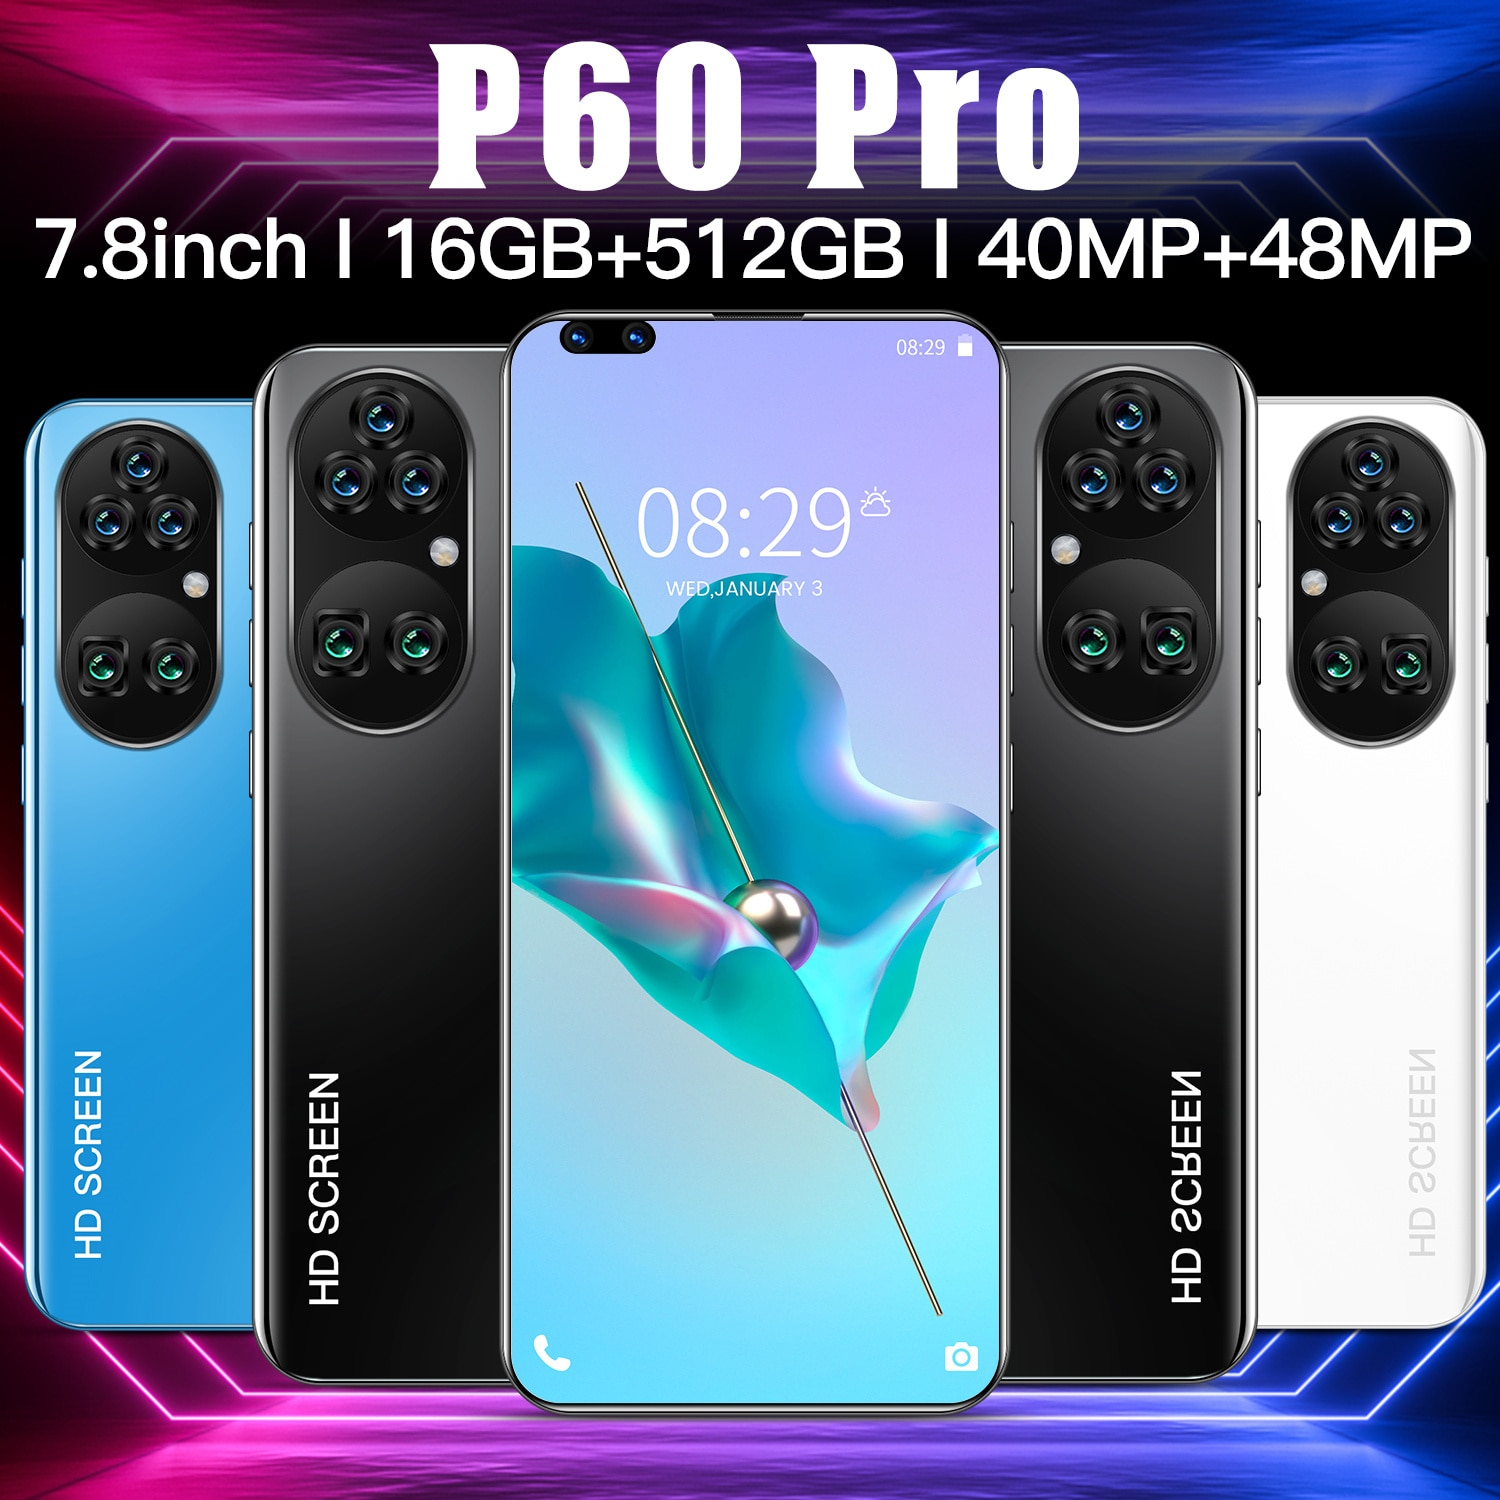 Global Version P60 Pro Global Version 7.8inch 16GB+512GB 5600mAh 40MP+48MP 5G Network Android10.0 GPS 10-Core Unlock Smartphone